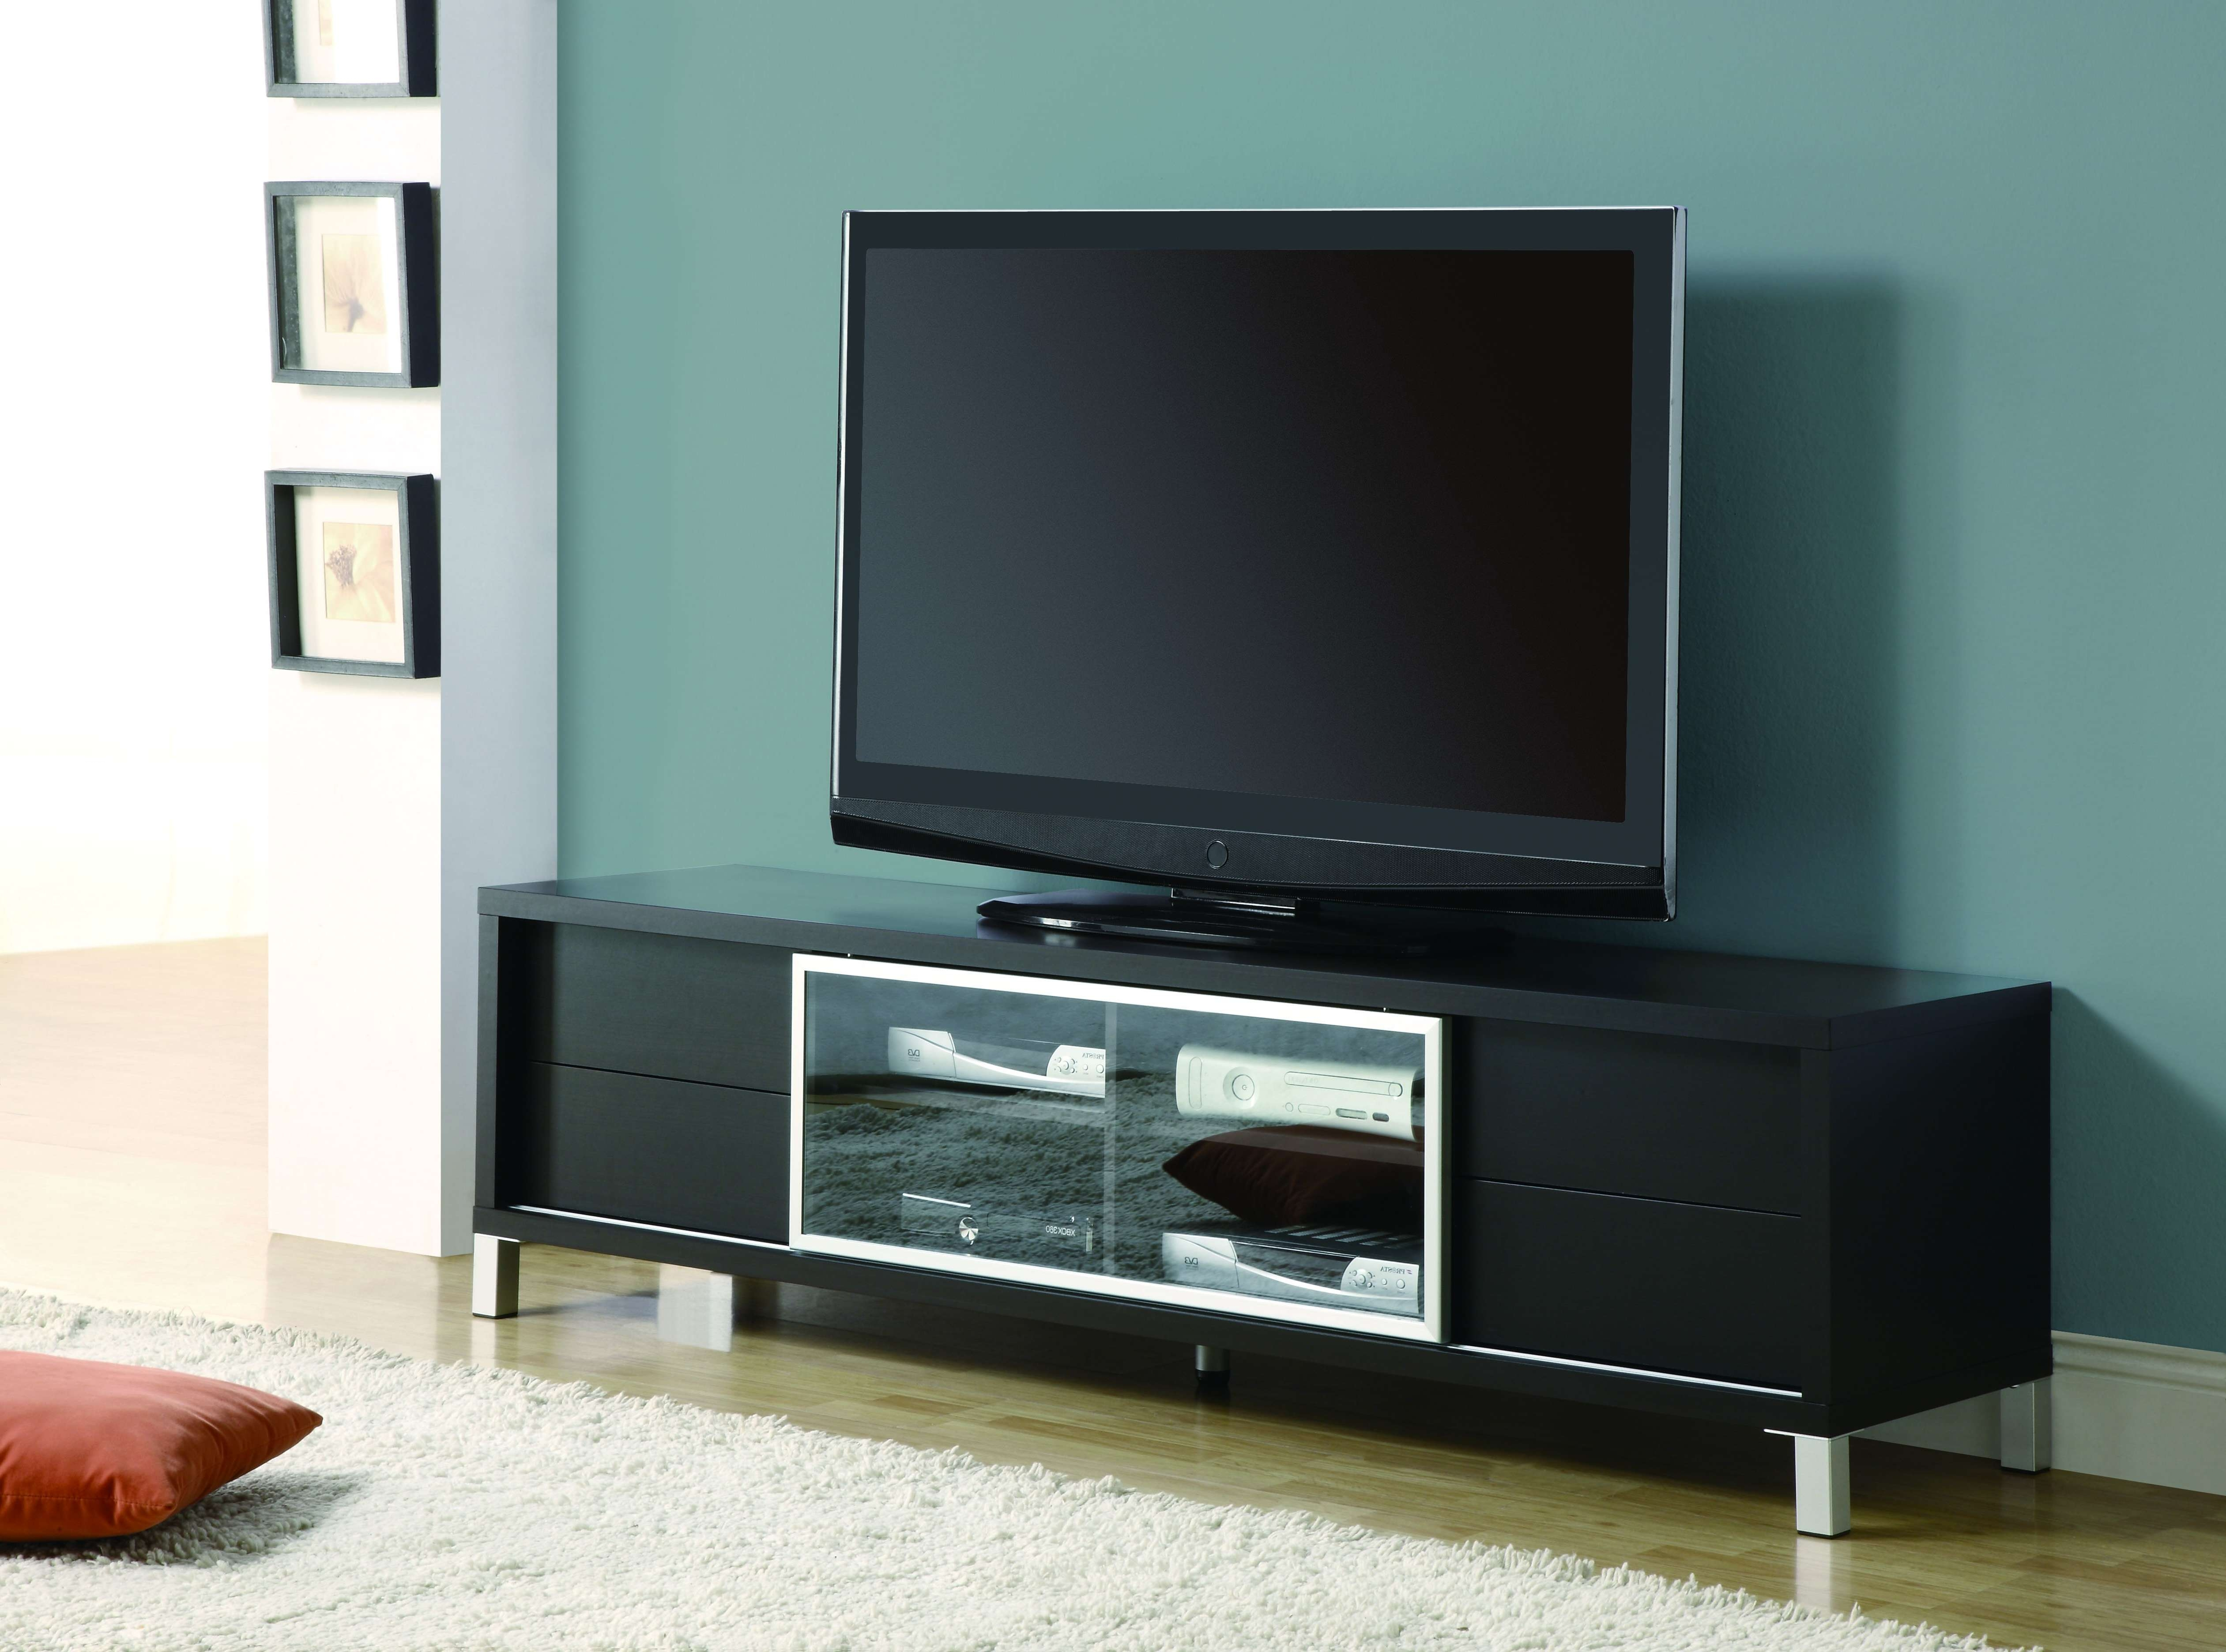 Black Painted Oak Wood Wide Screen Tv Stand Mixed Light Blue Wall In Oak Tv Stands For Flat Screen (View 2 of 15)